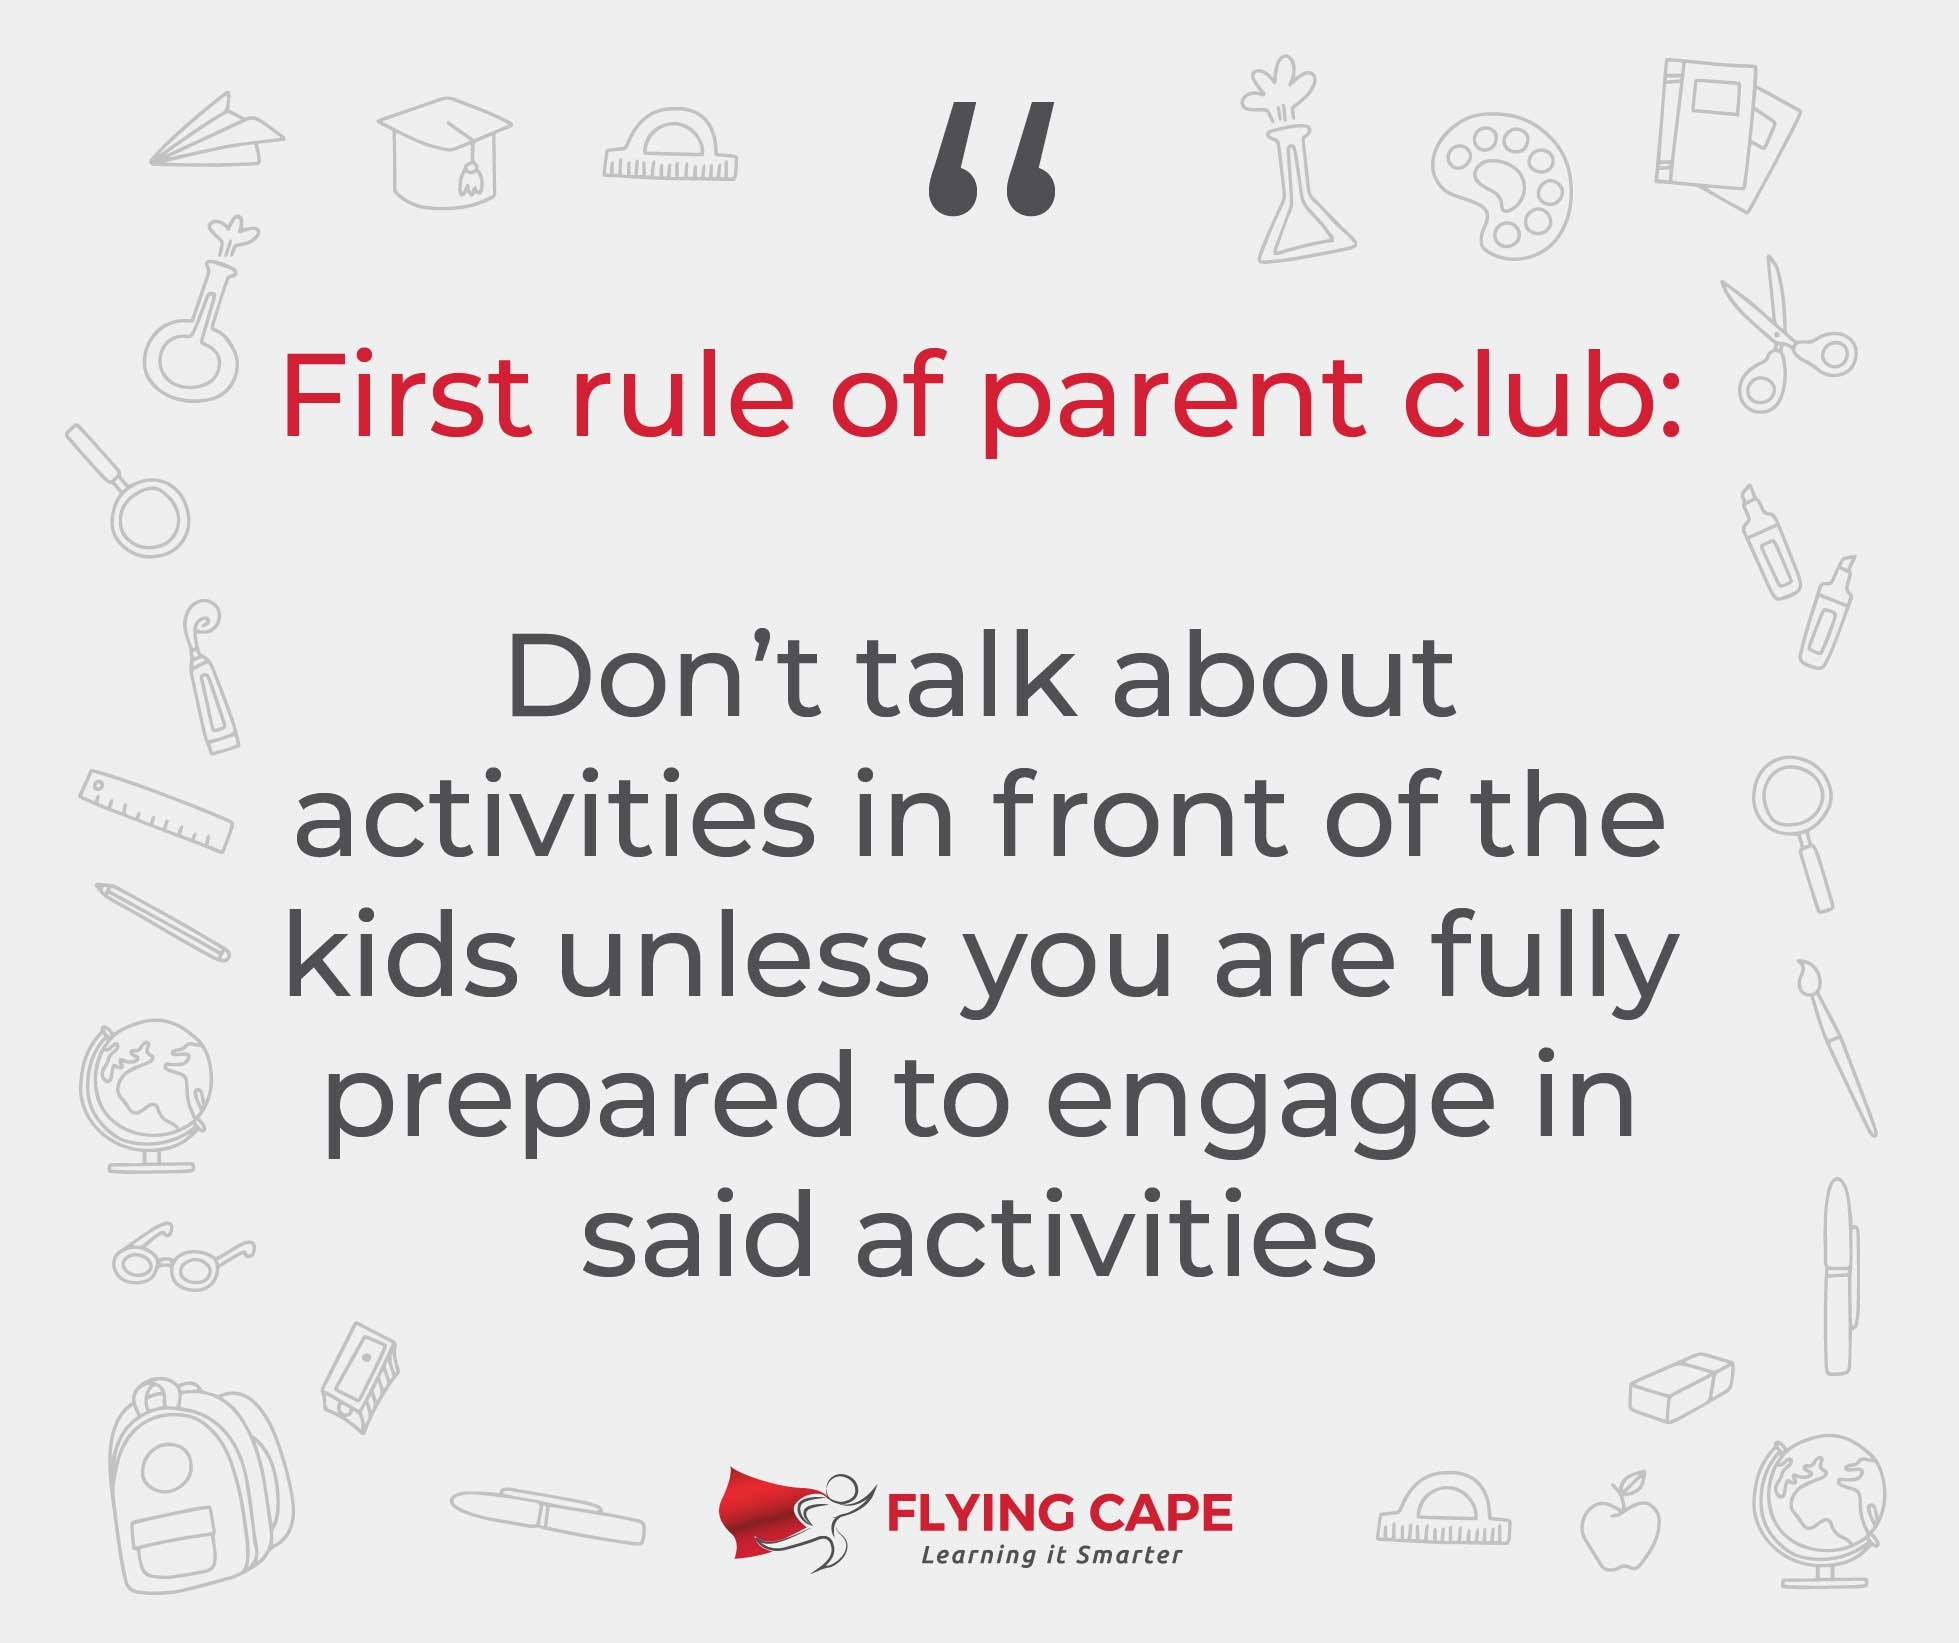 First rule of parent club